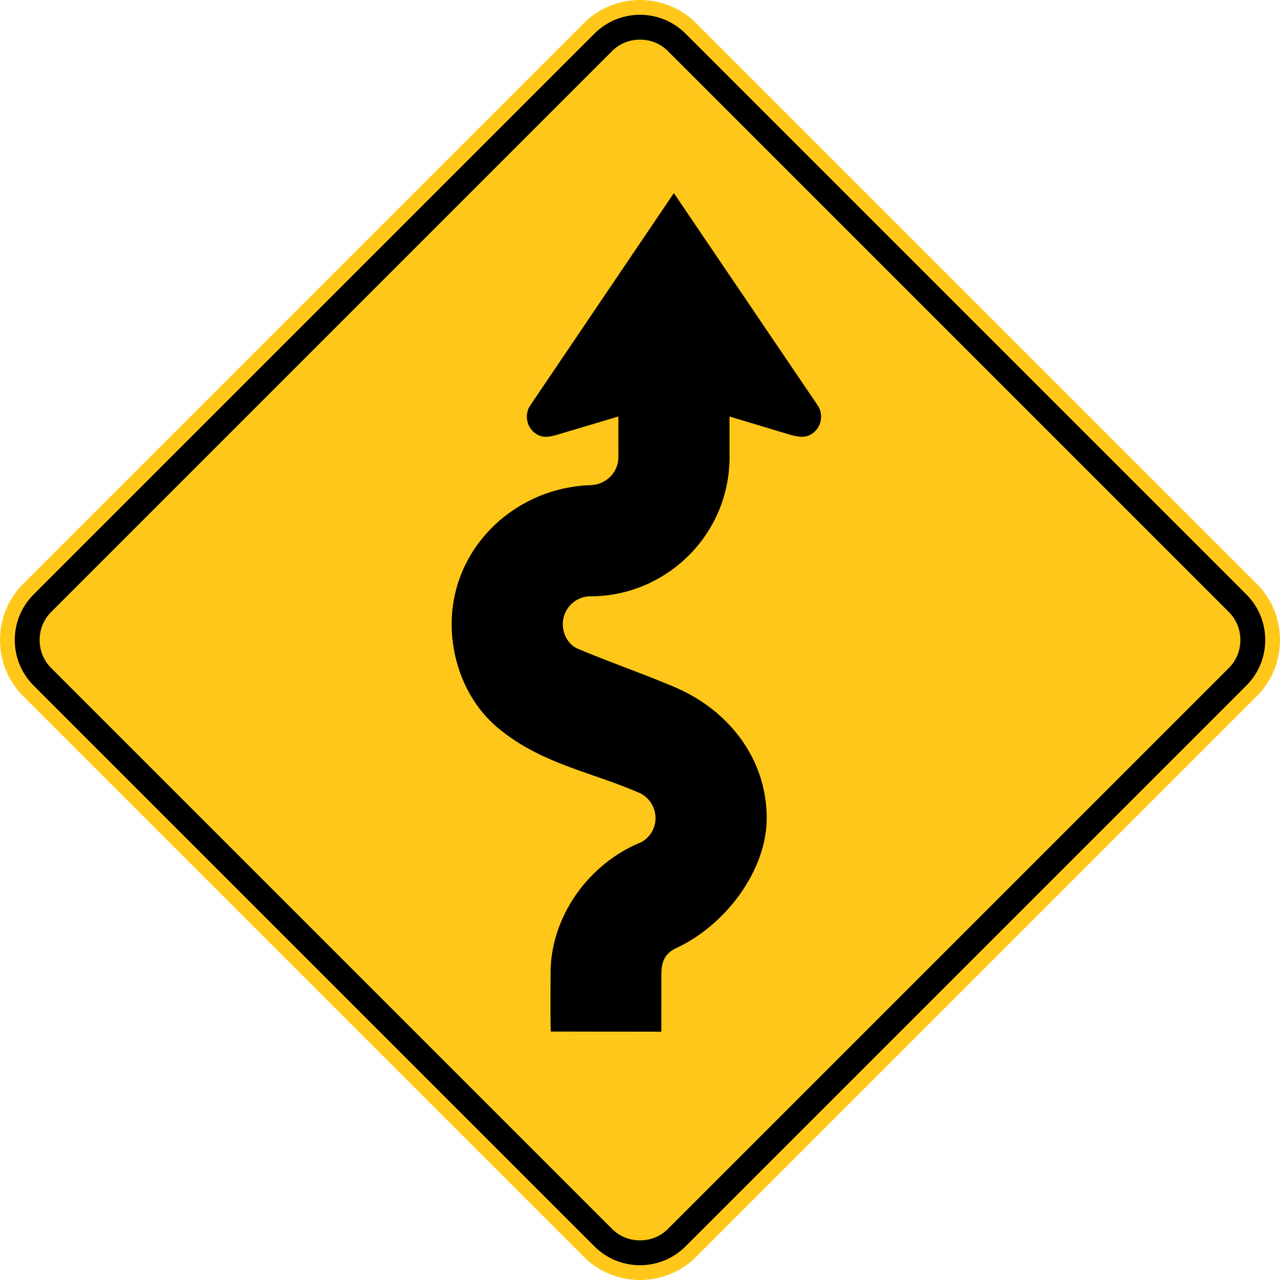 Clipart road trail. Winding right warning sign